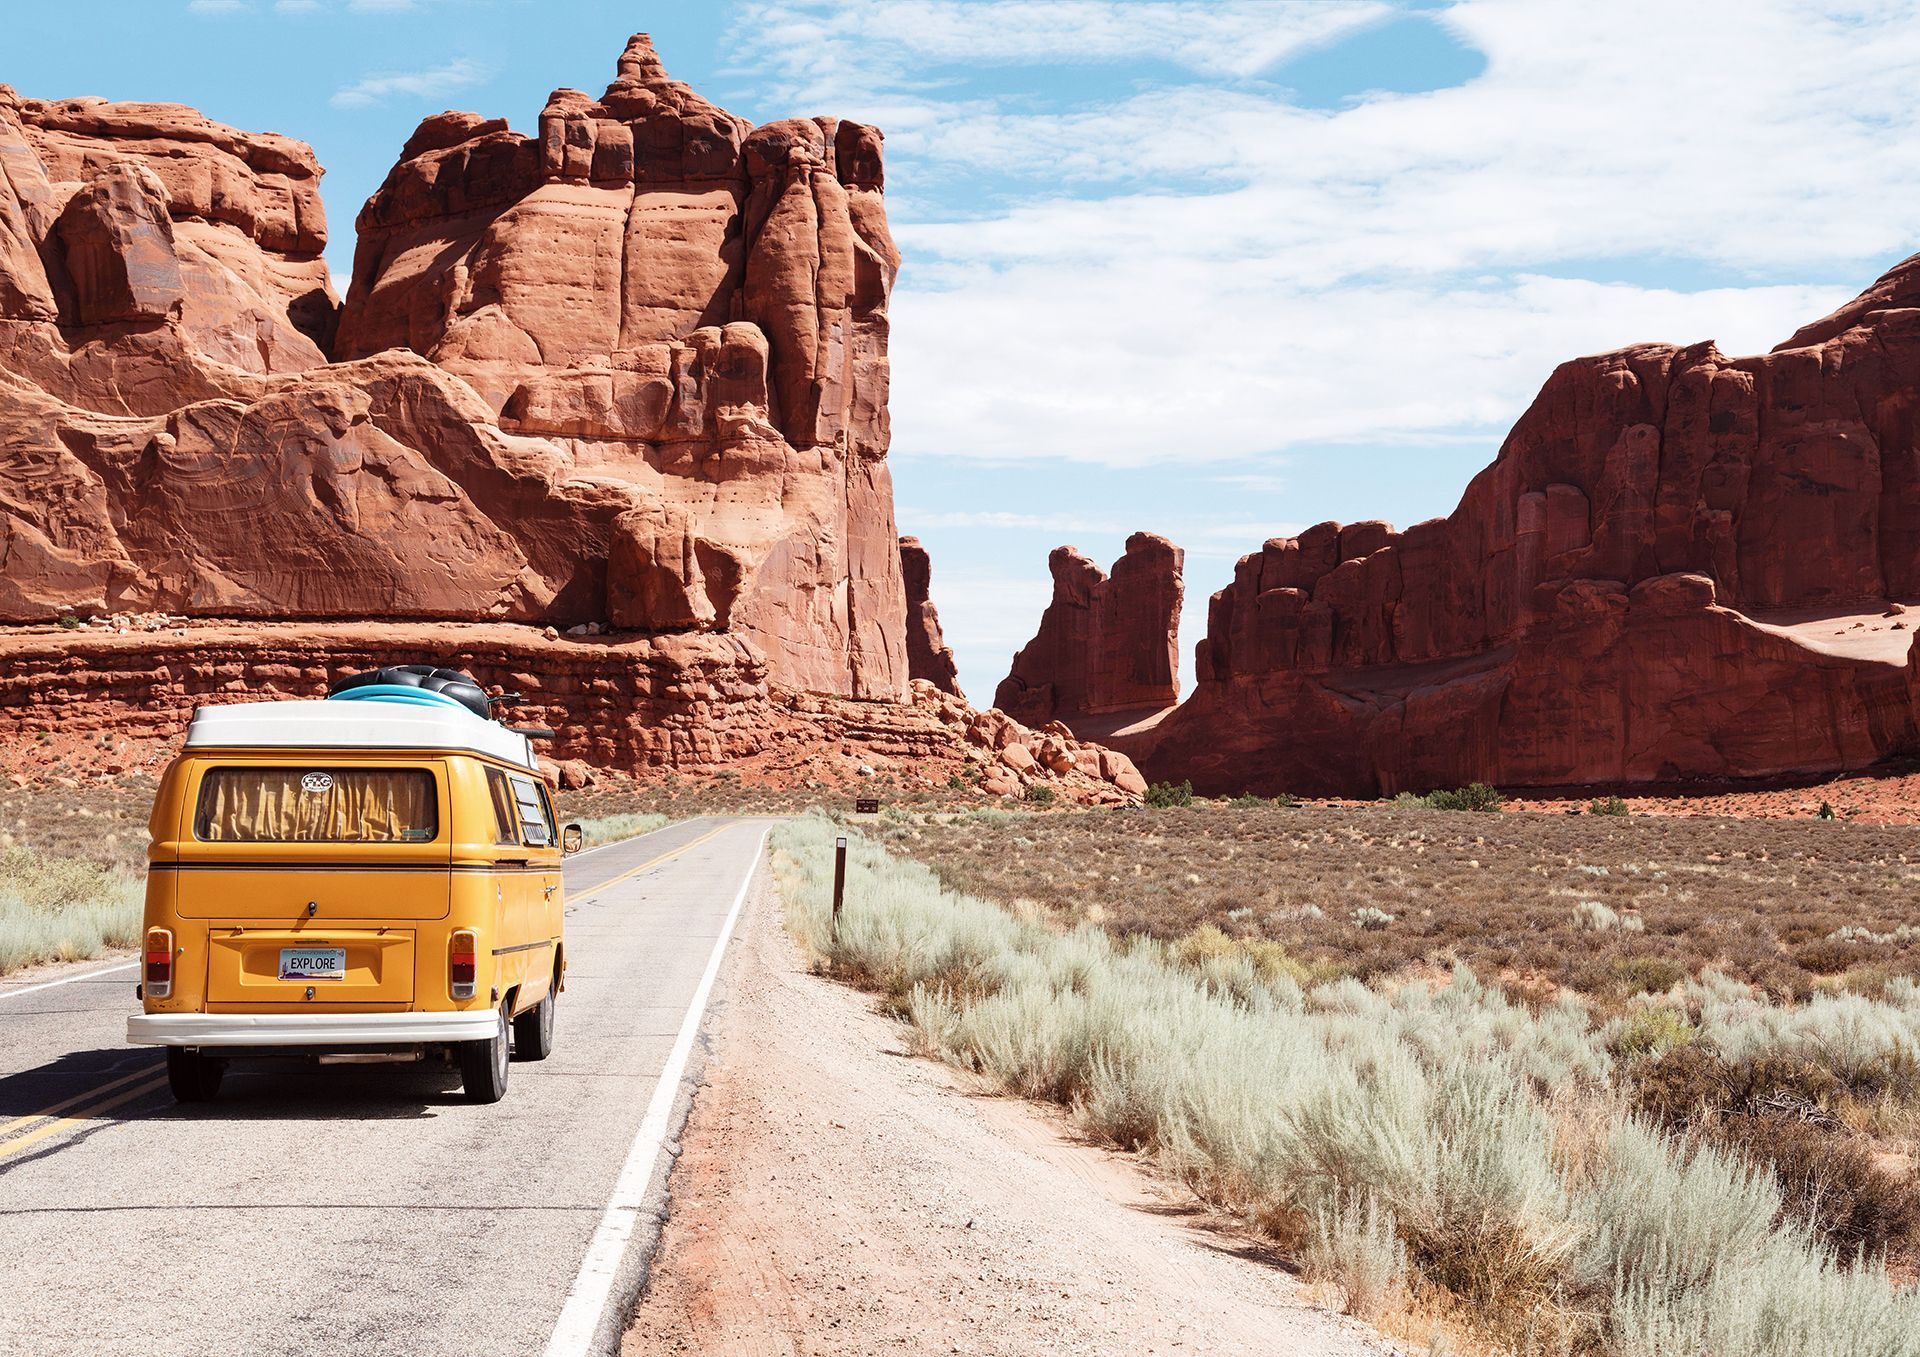 How To Move To A Different State Without Money